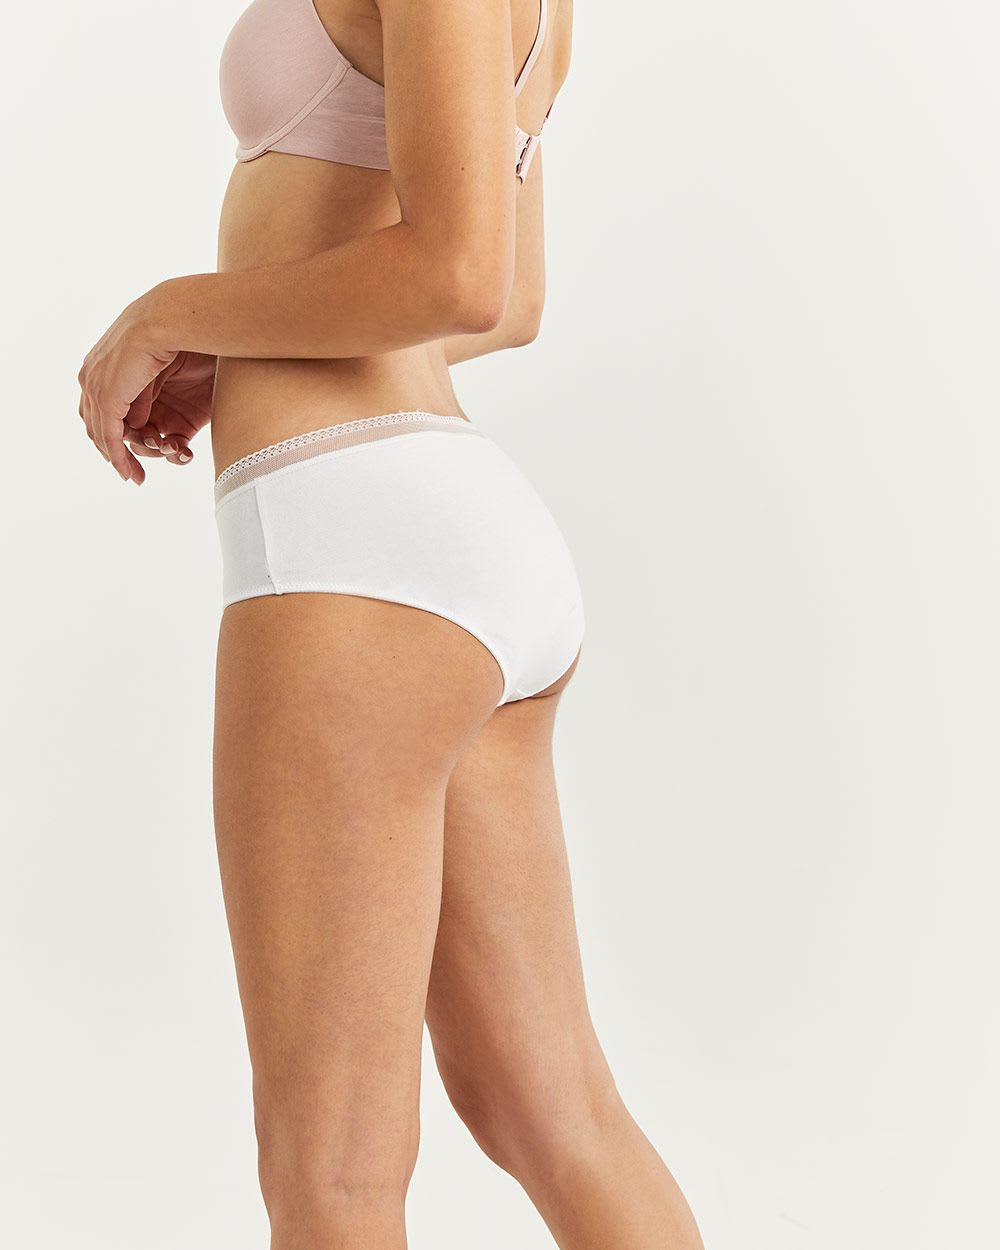 Cotton Hipster Panty with Mesh & Lace